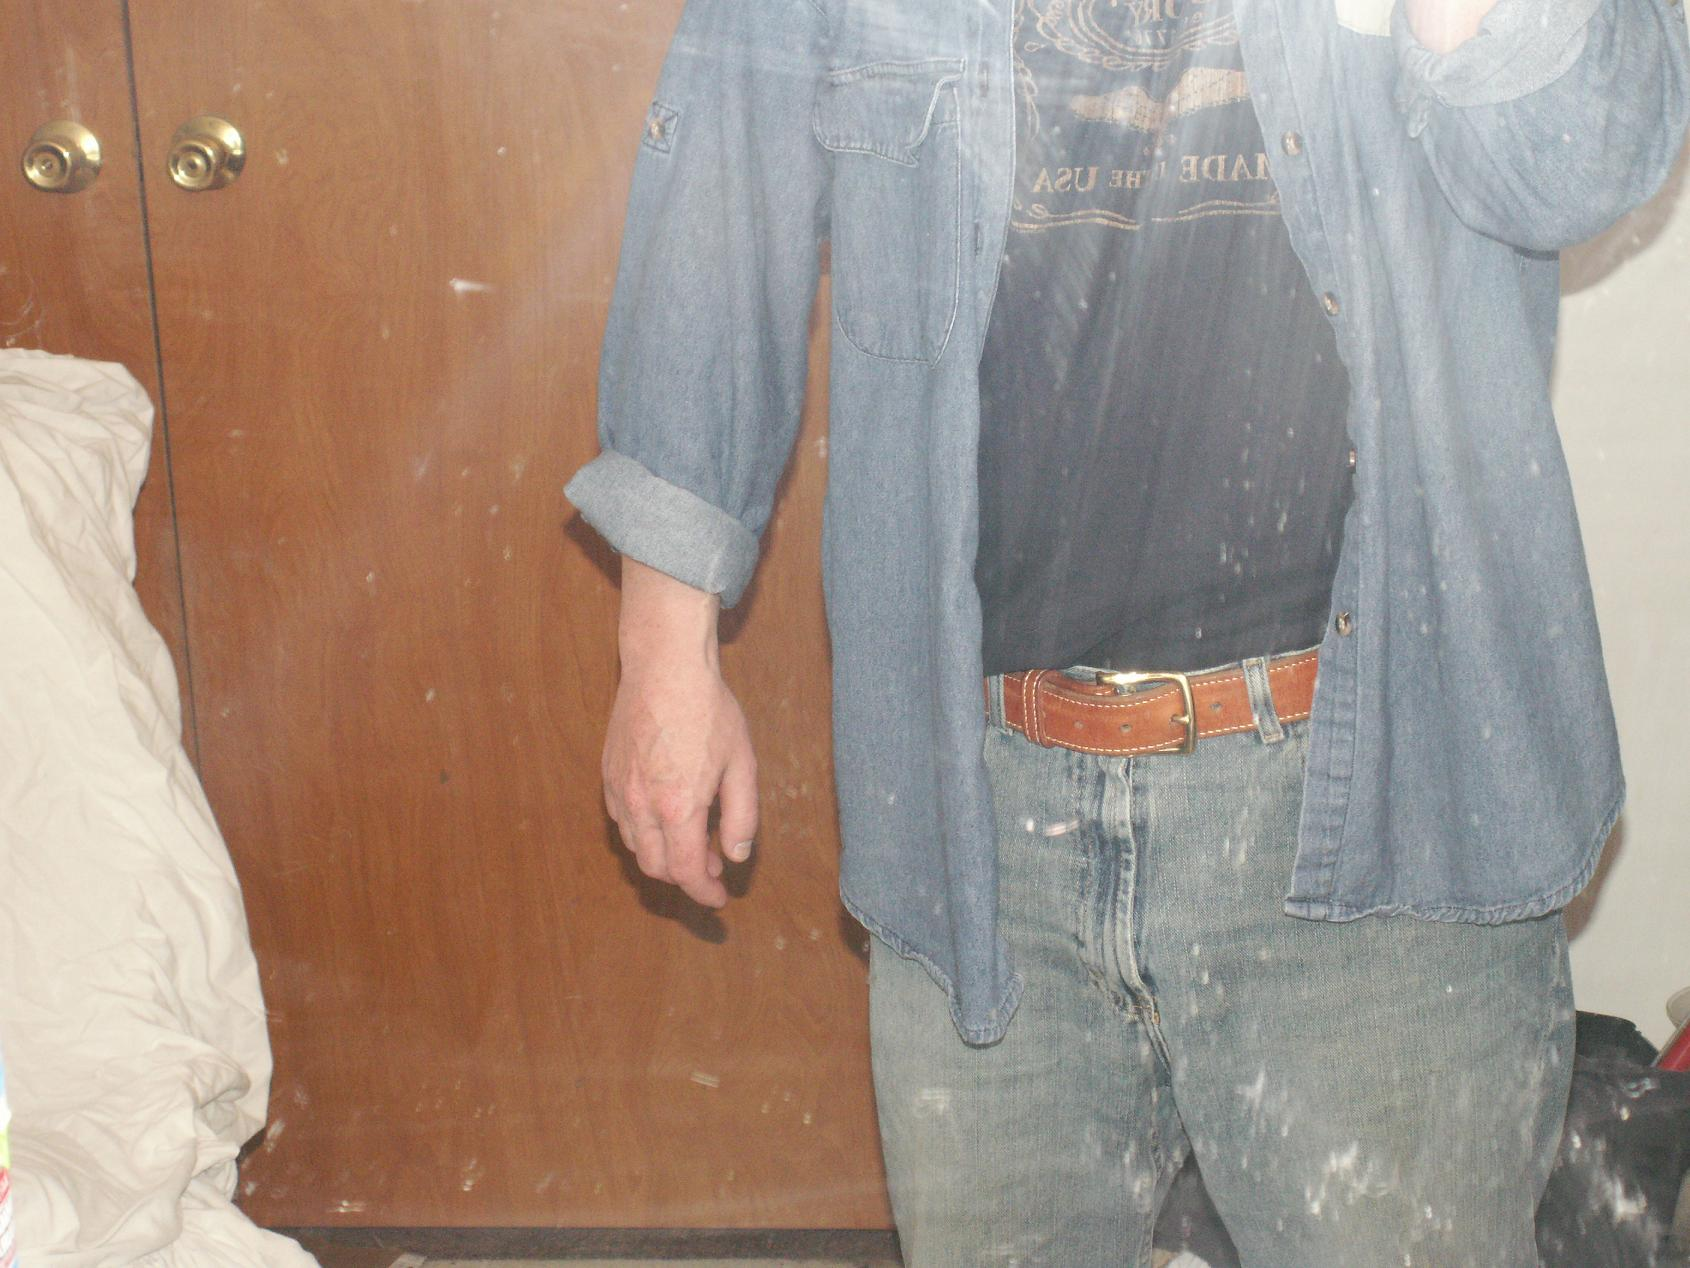 Pictorial: How You Carry Concealed-concealed-036.jpg